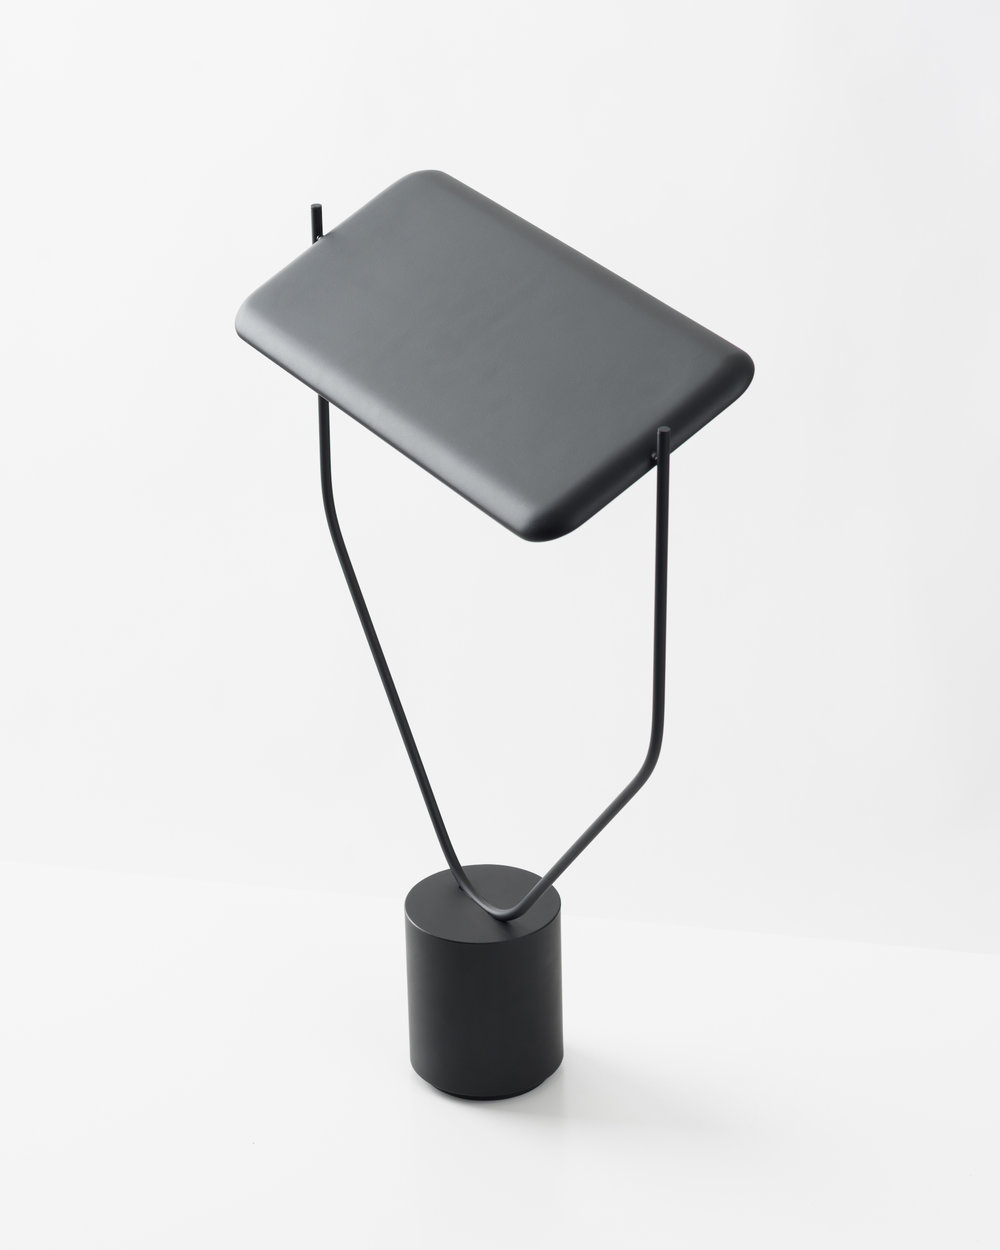 Lloyd Desk Lamp designed by Knauf and Brown